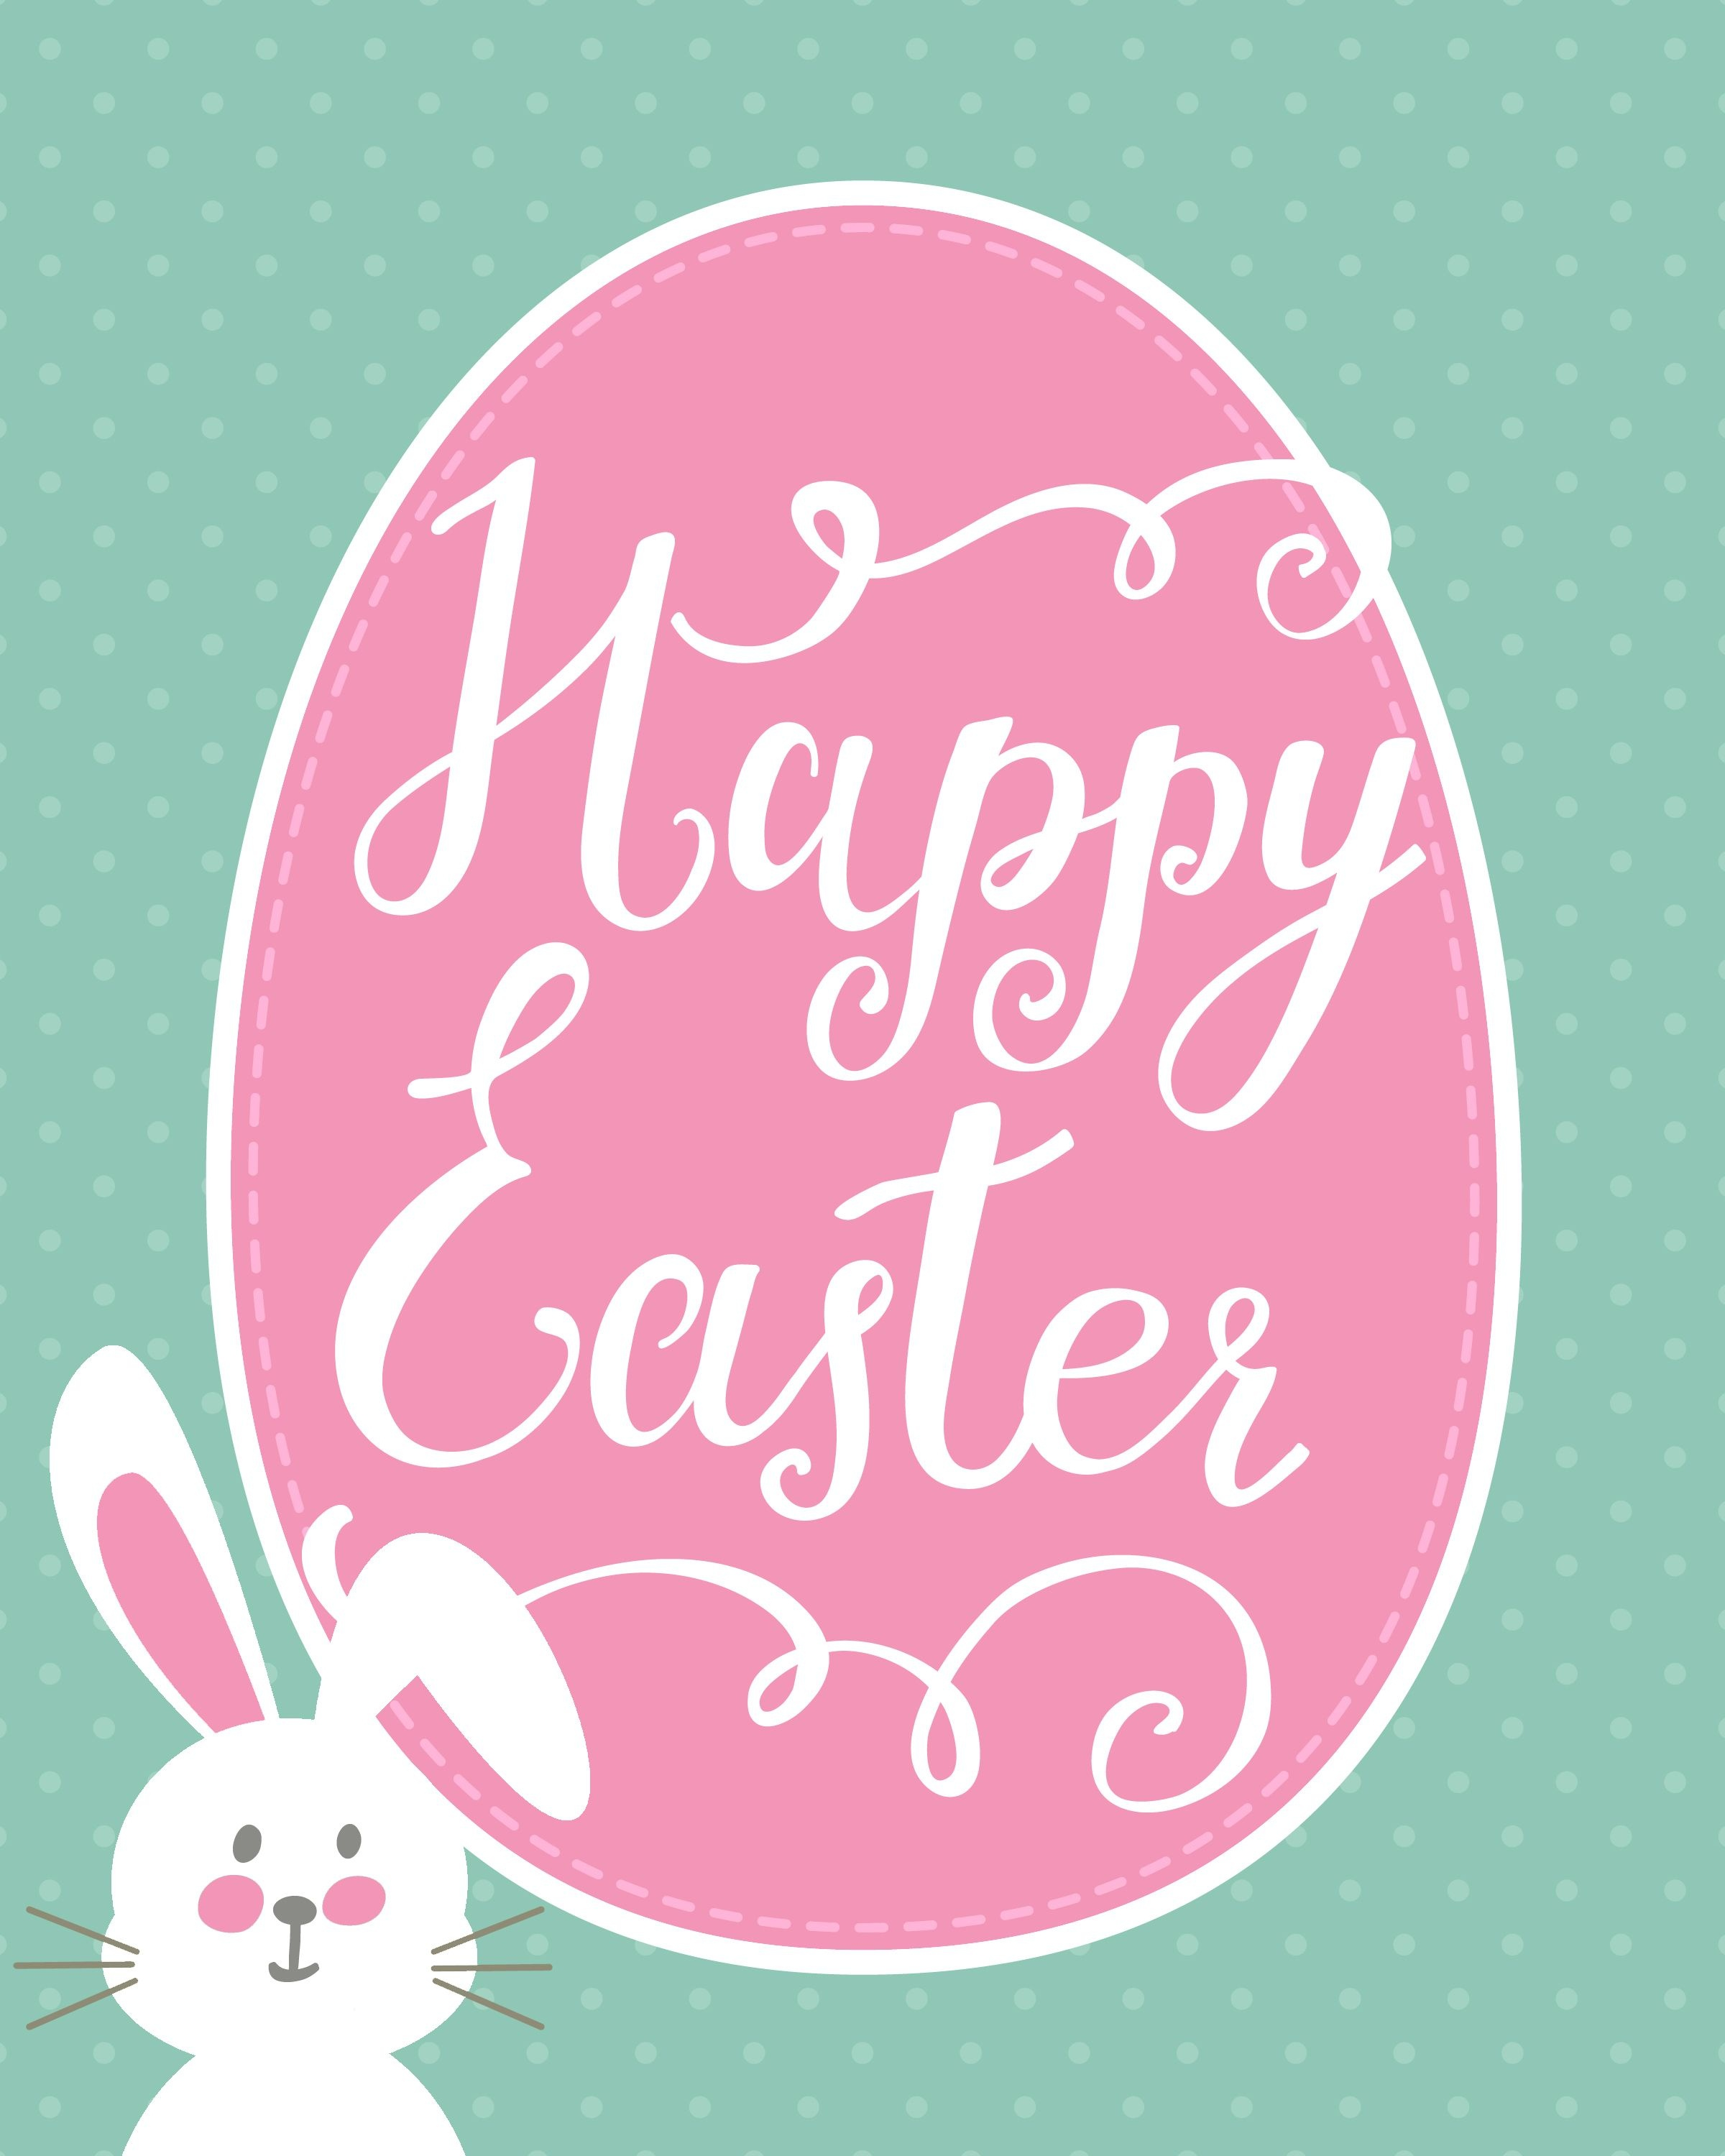 Happy Easter Bunny Printable | Holidays - Easter | Happy Easter - Free Printable Easter Images